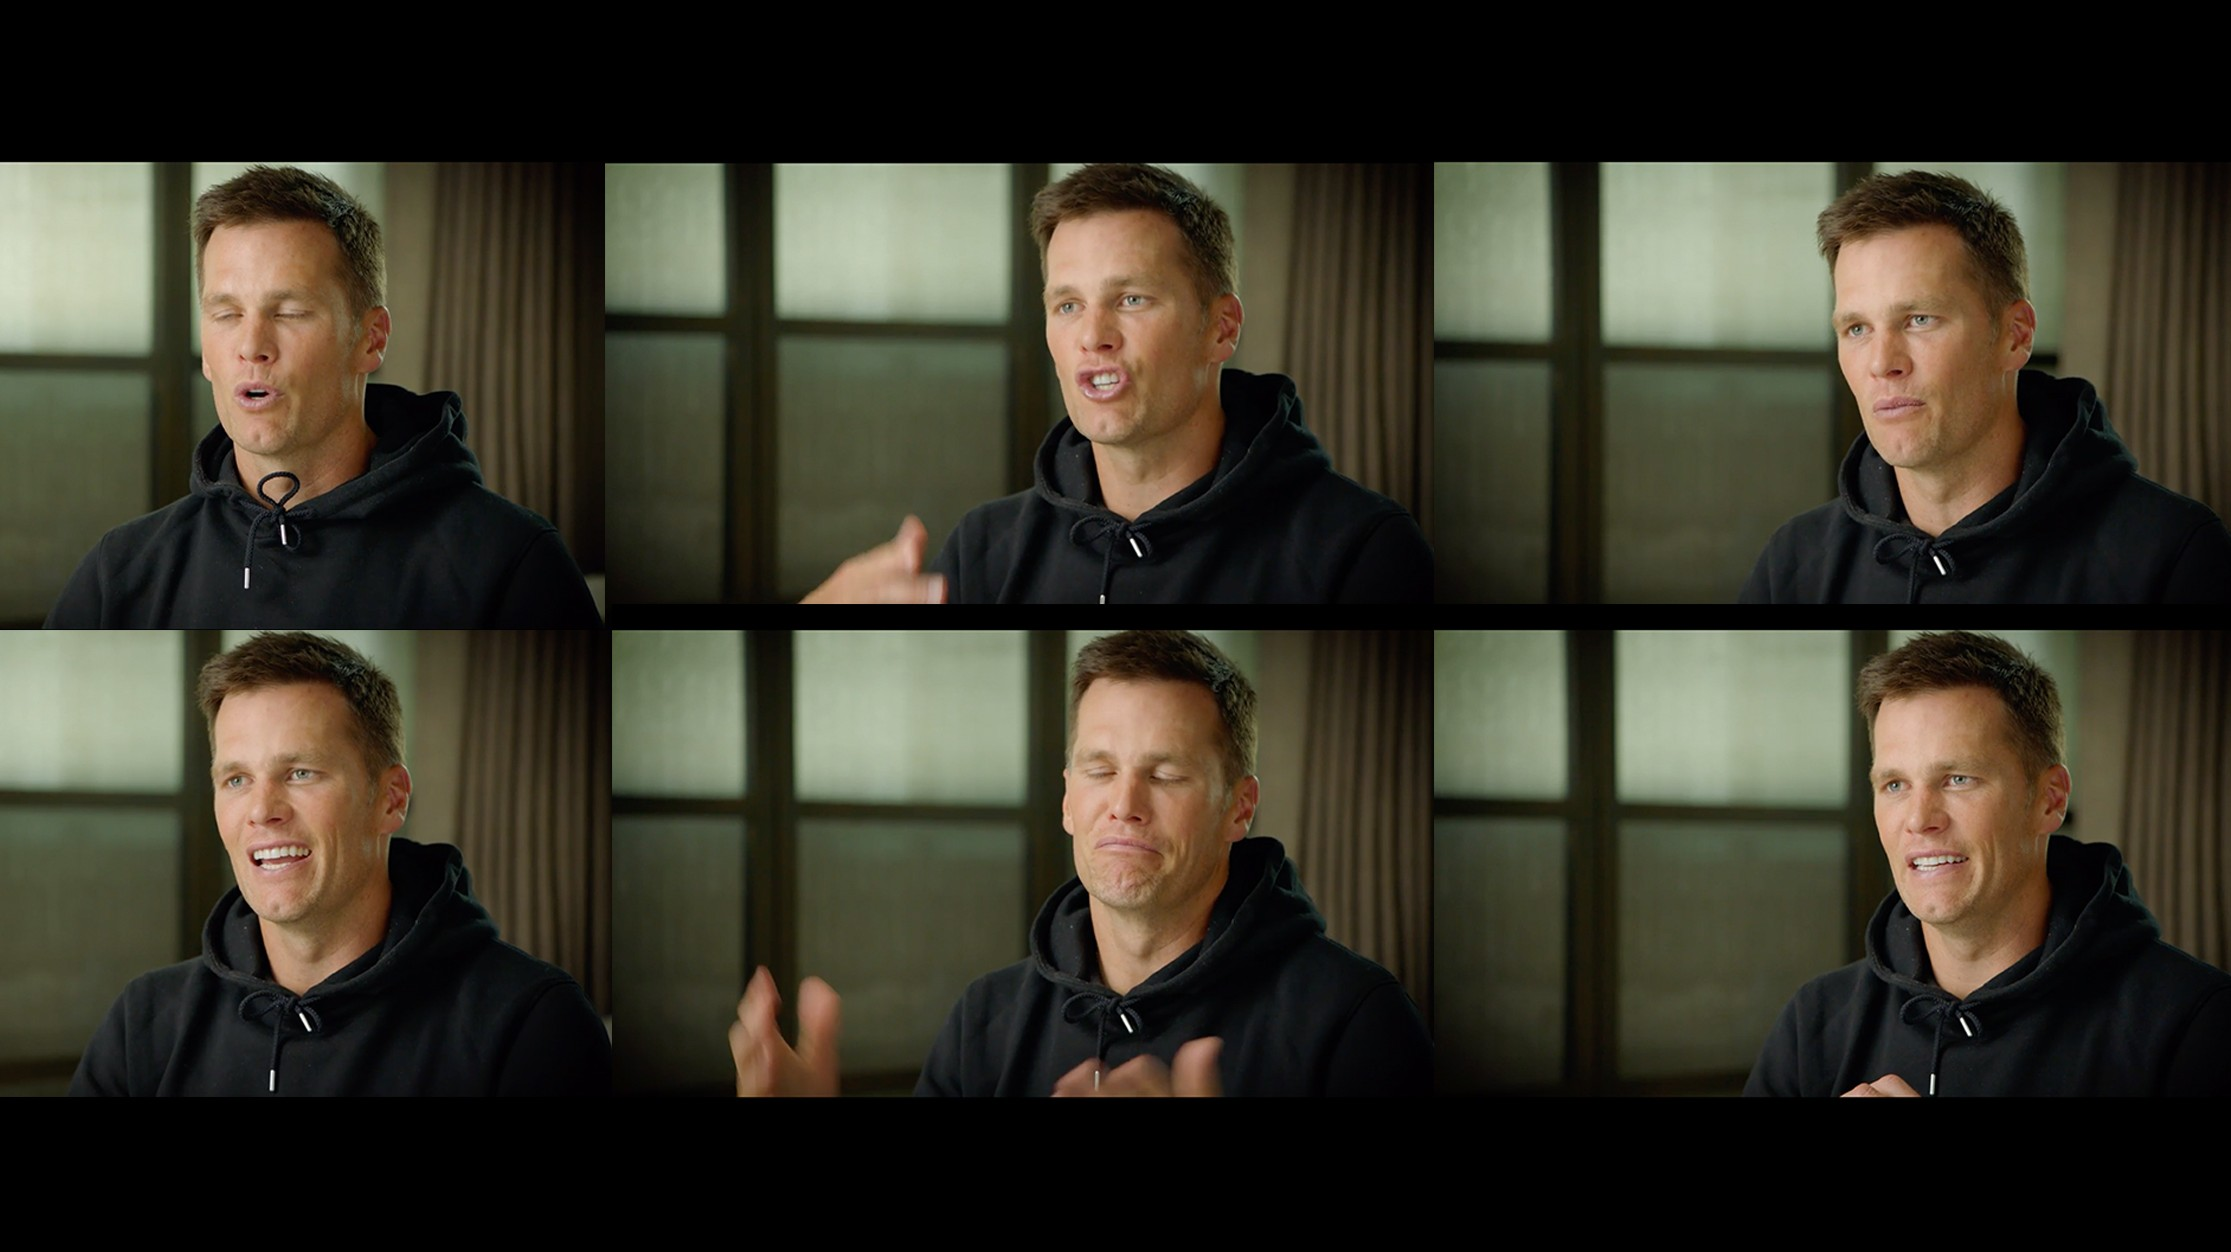 Does Tom Brady Think COVID-19 Was Sent to Make Us All 'Chill Out'?